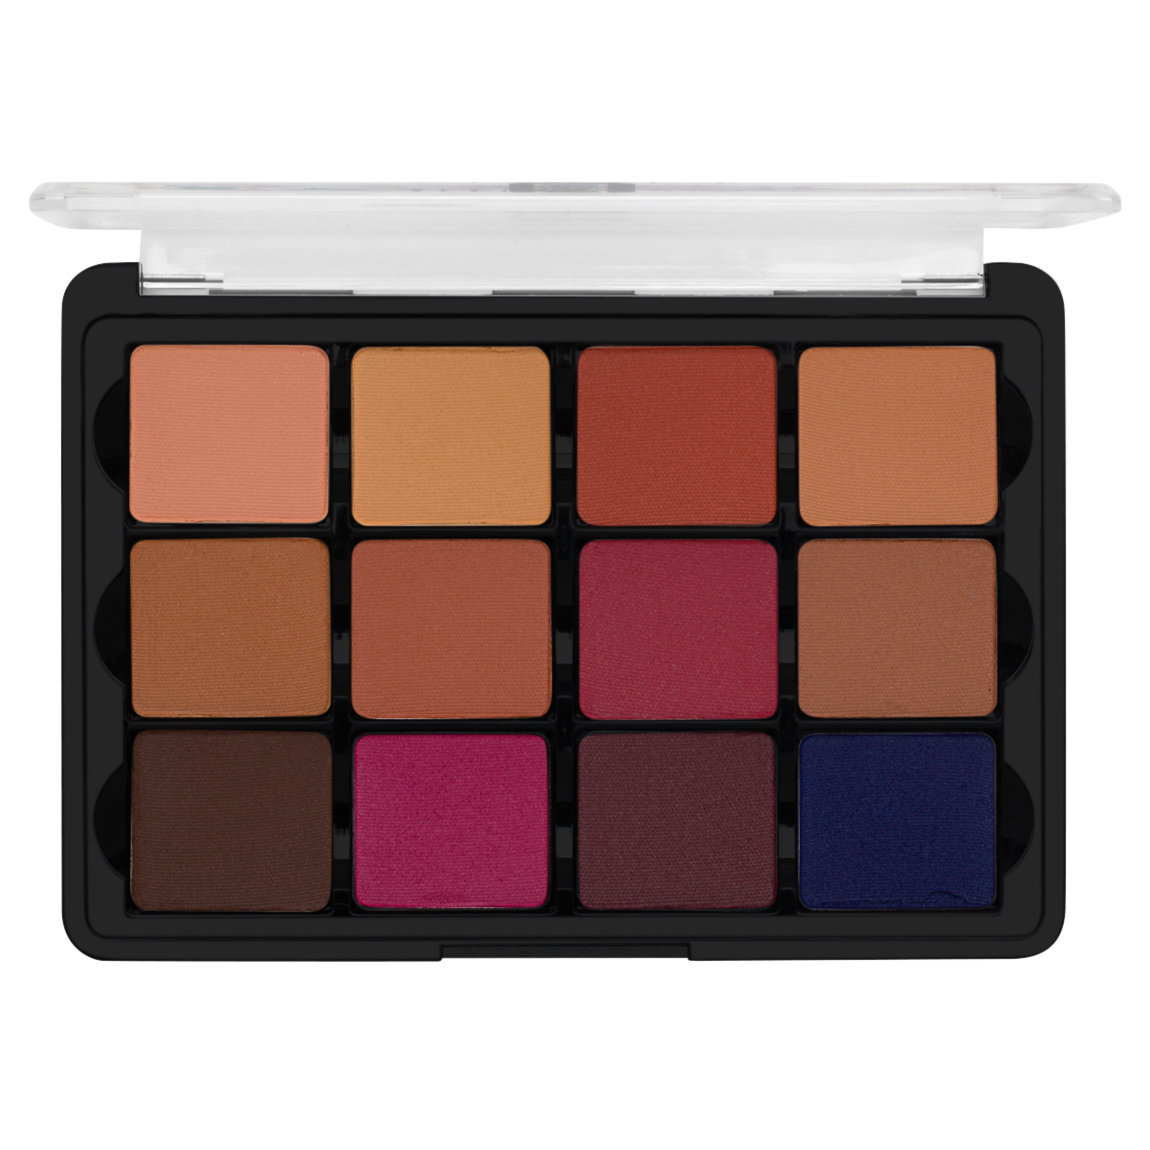 Viseart Eye Shadow Palette 14 Neutral Mattes 2: Milieu product swatch.